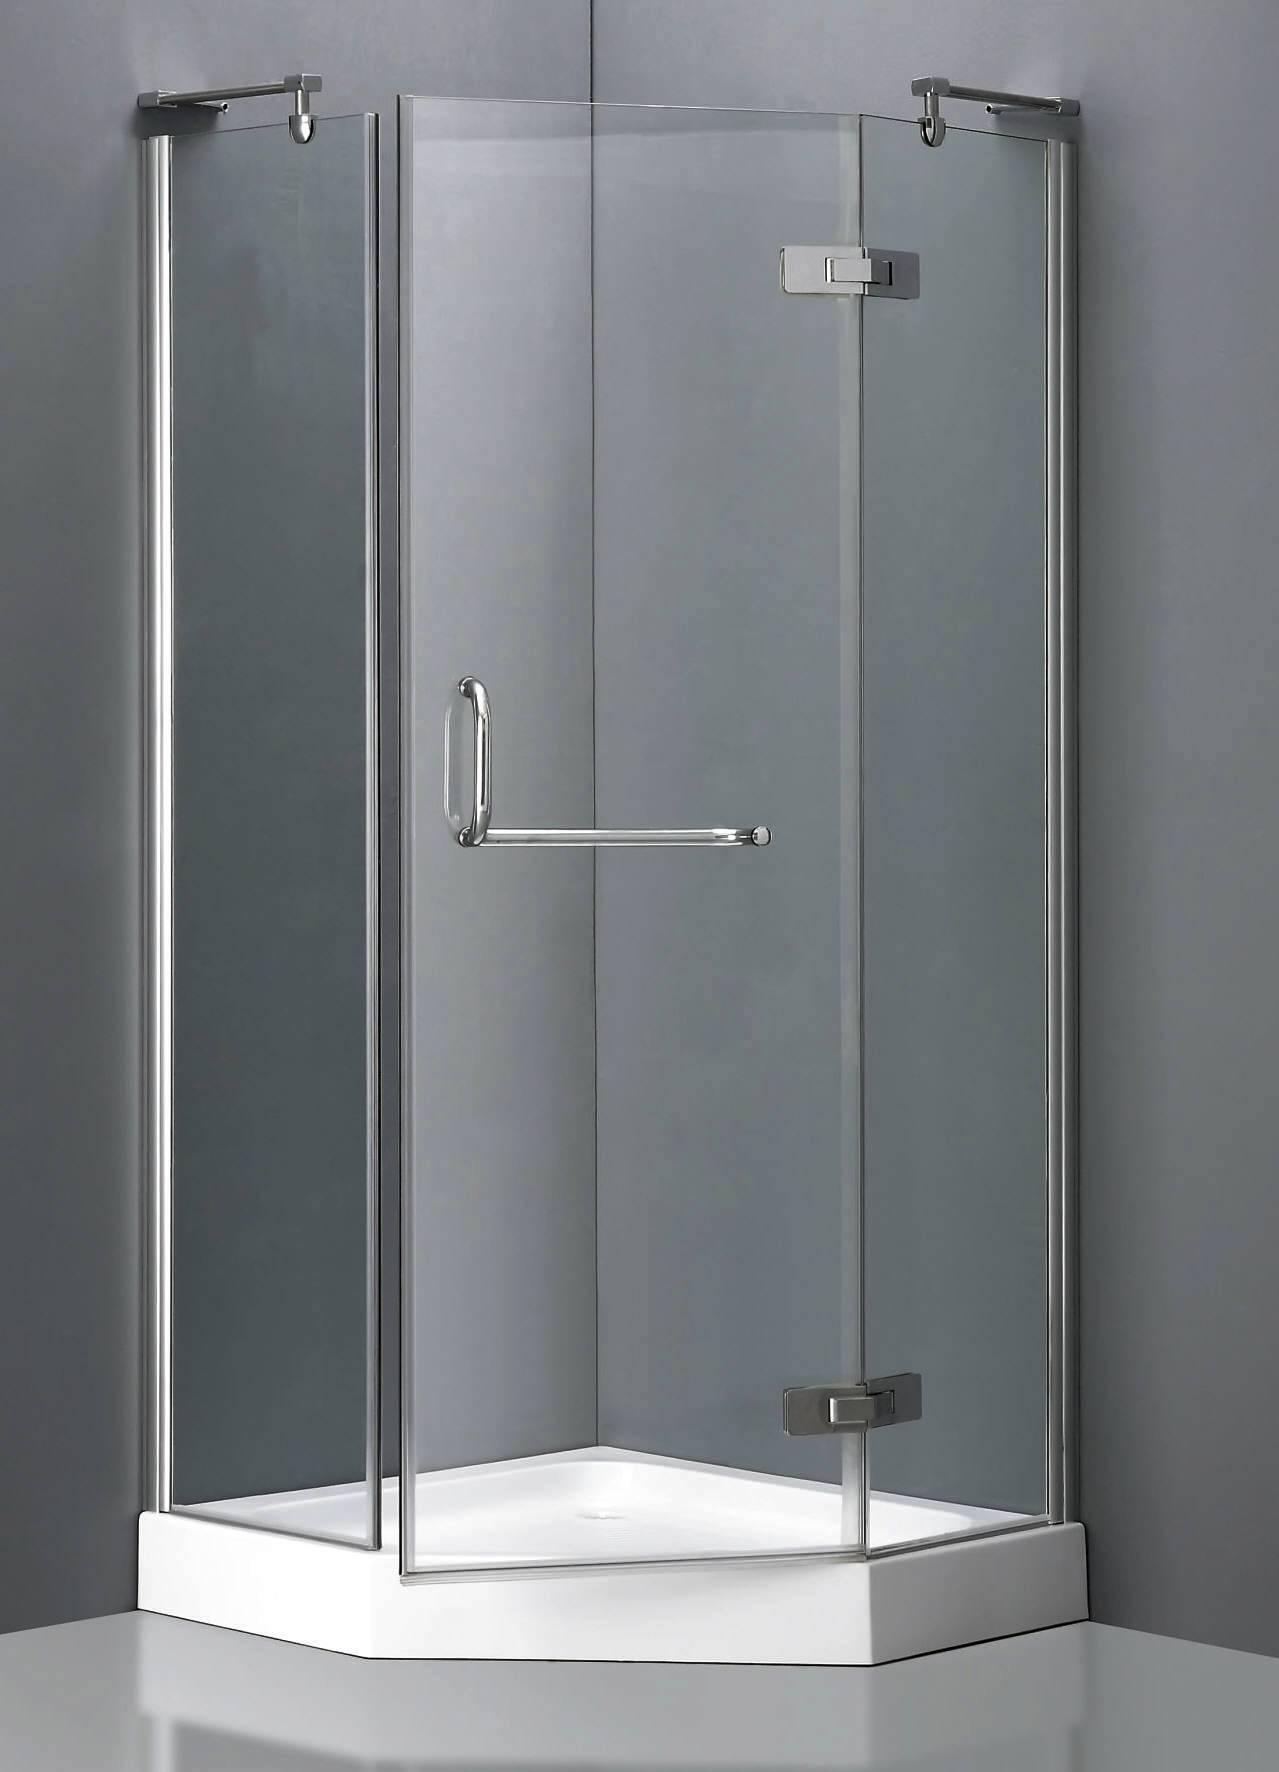 Lowes Shower Inserts Bathroom Unique Stall